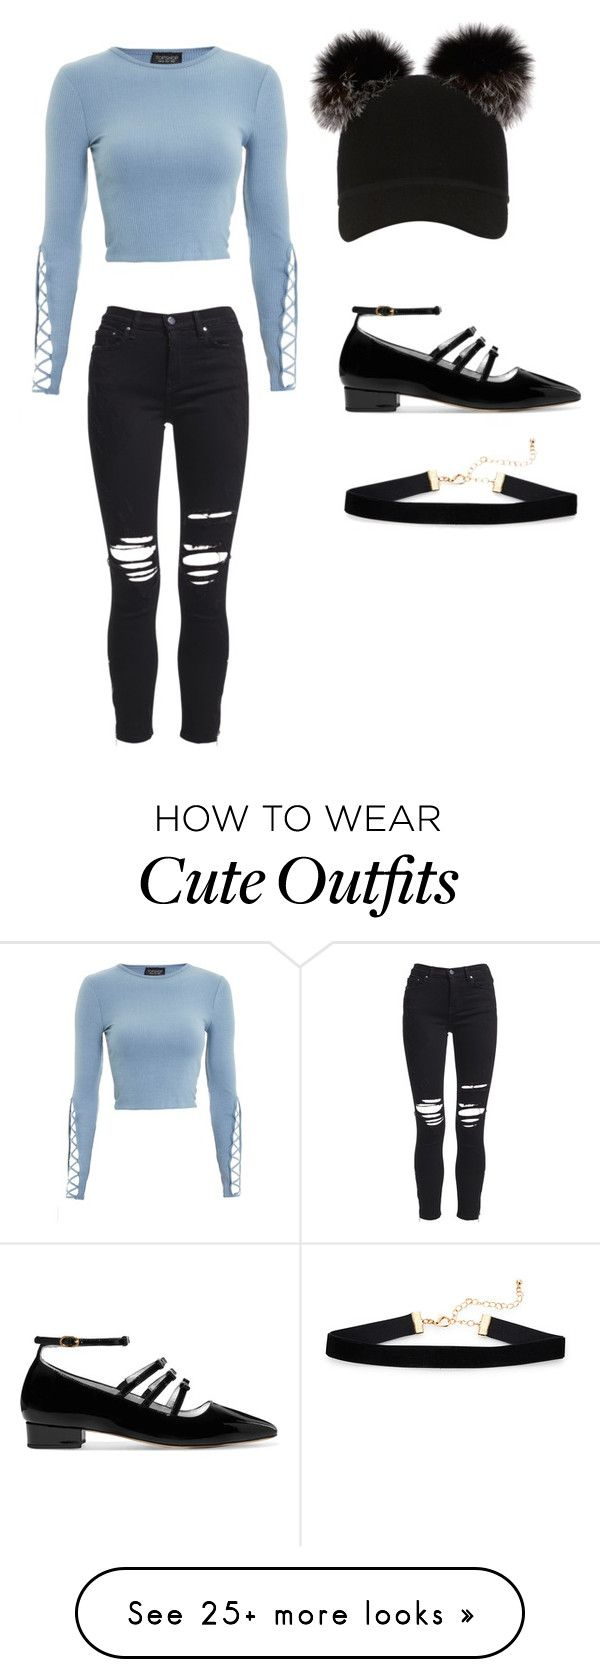 """Cute outfit"" by natalybelle on Polyvore featuring Topshop, Charlotte Simone, AlexaChung and AMIRI"